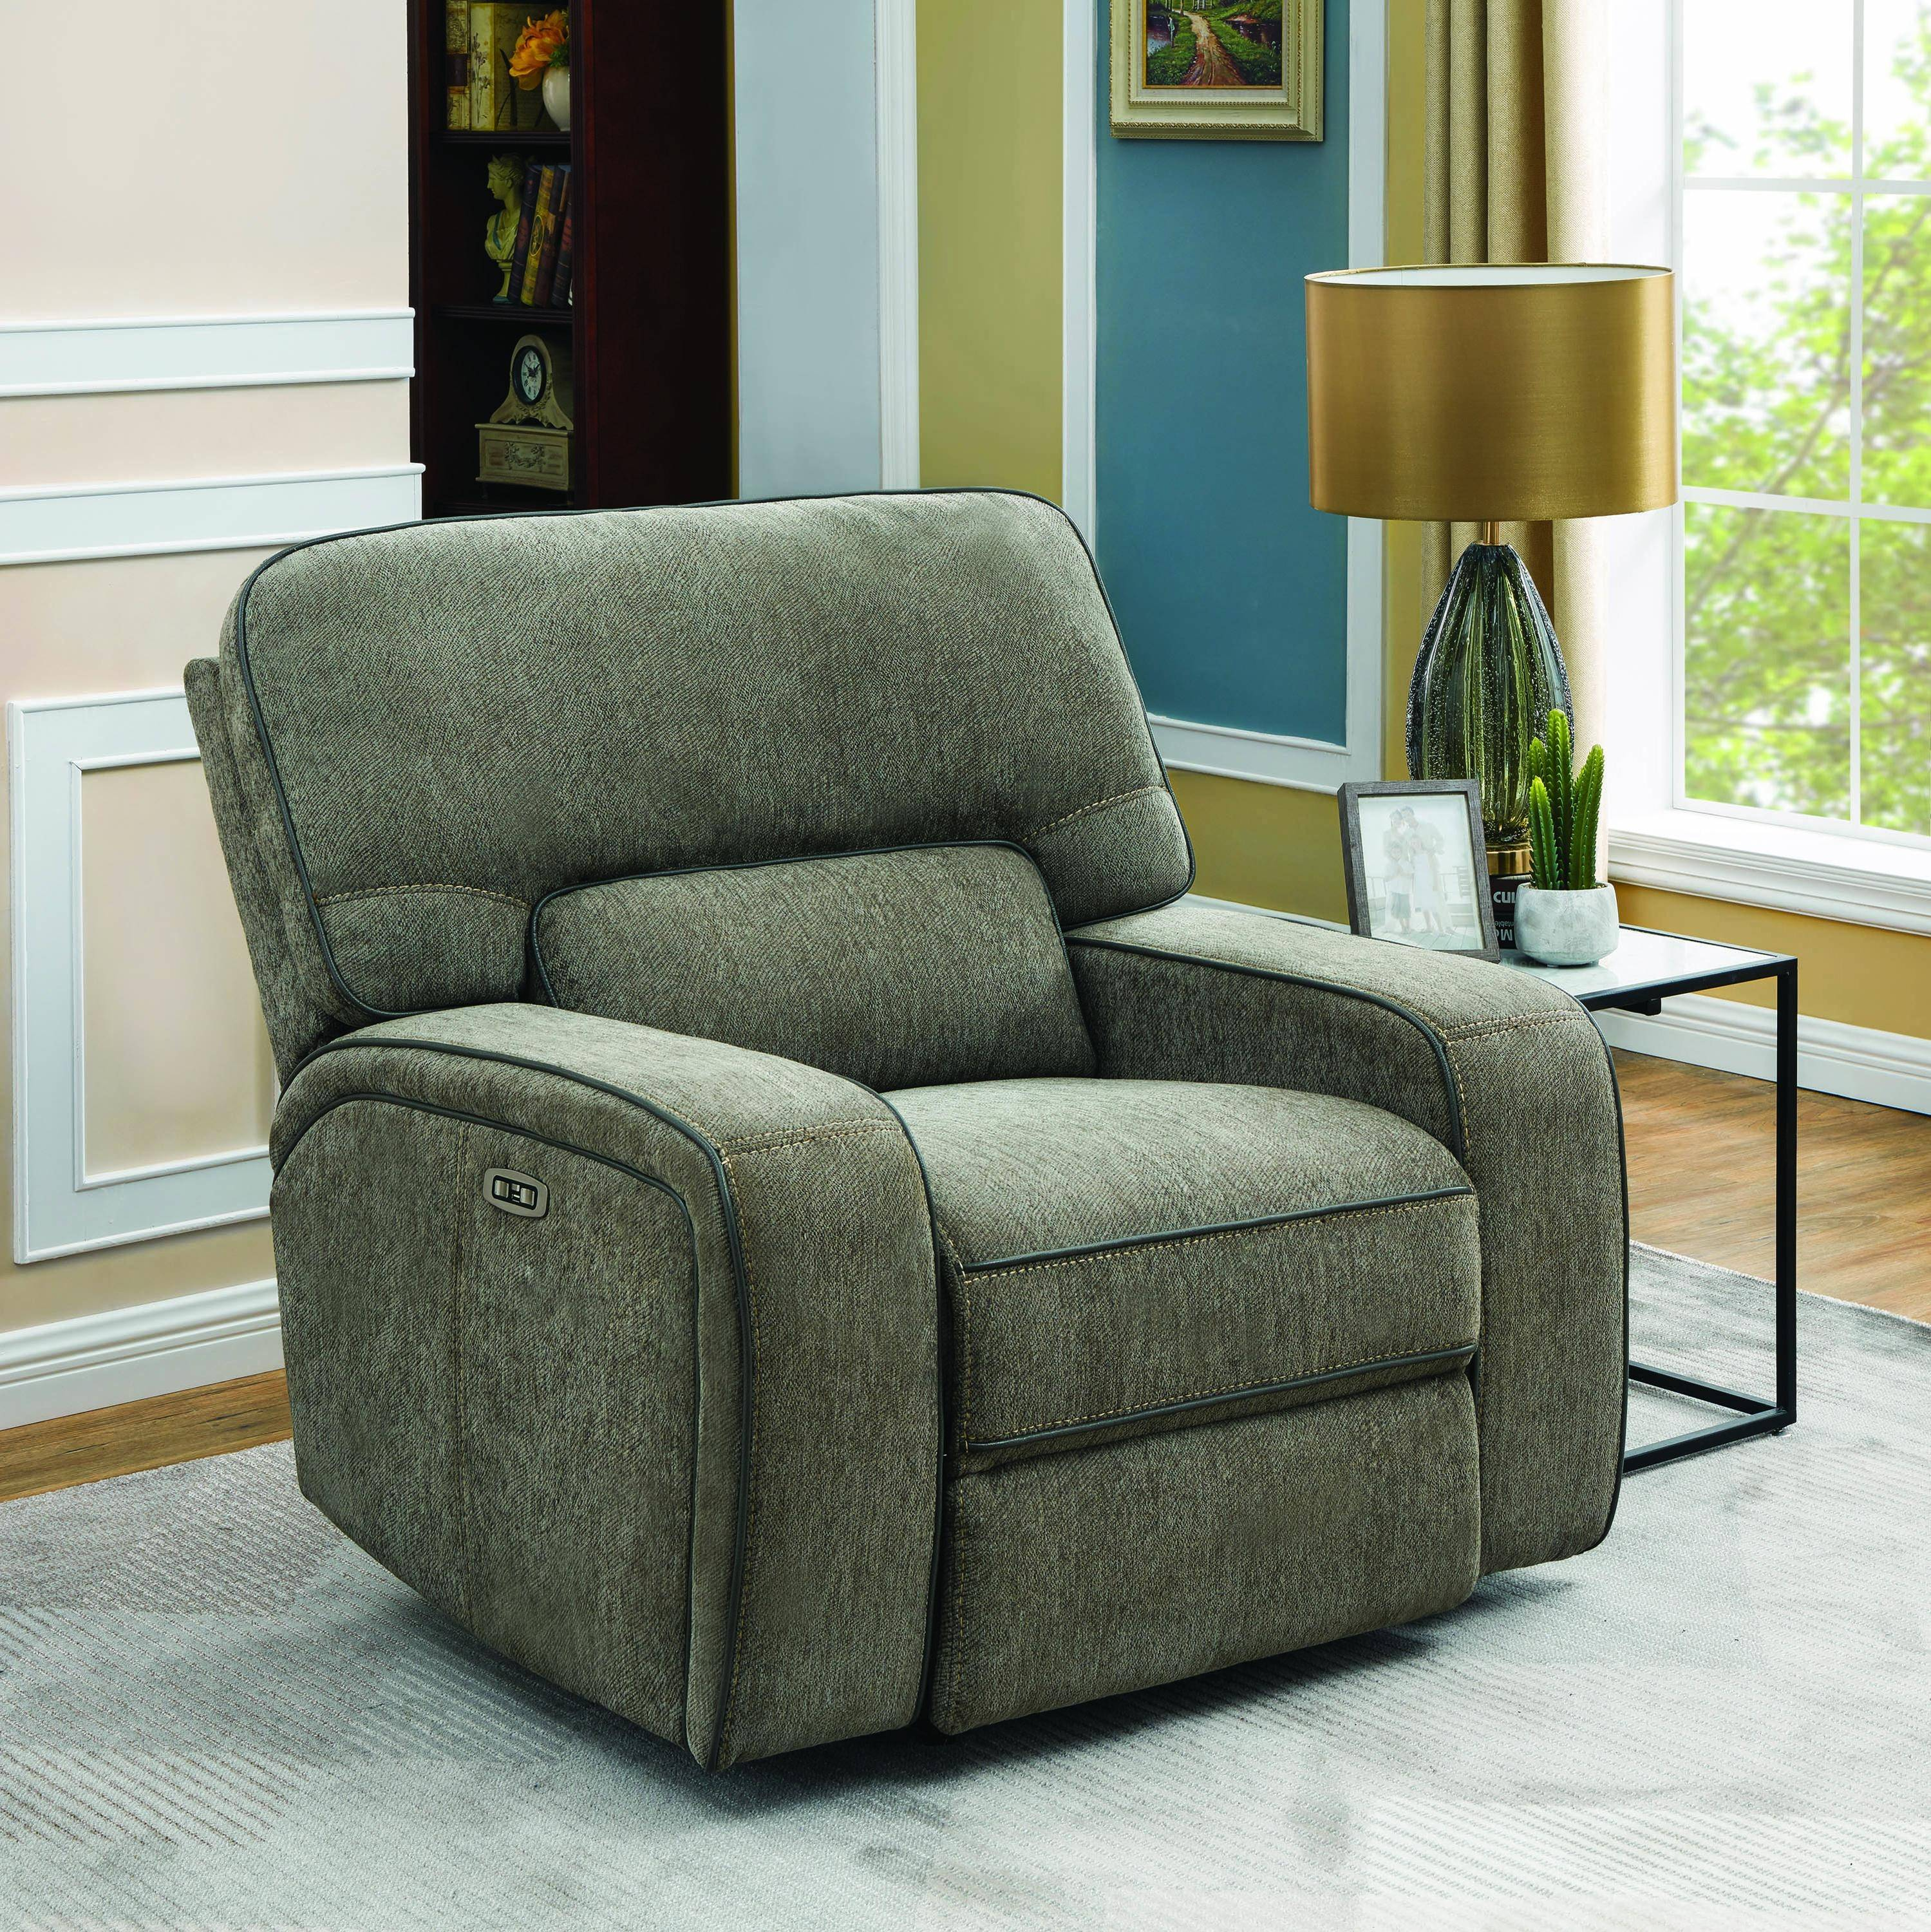 Roomstore Furniture Store: Modern Gray Fabric Upholstery Power2 Glider Recliner